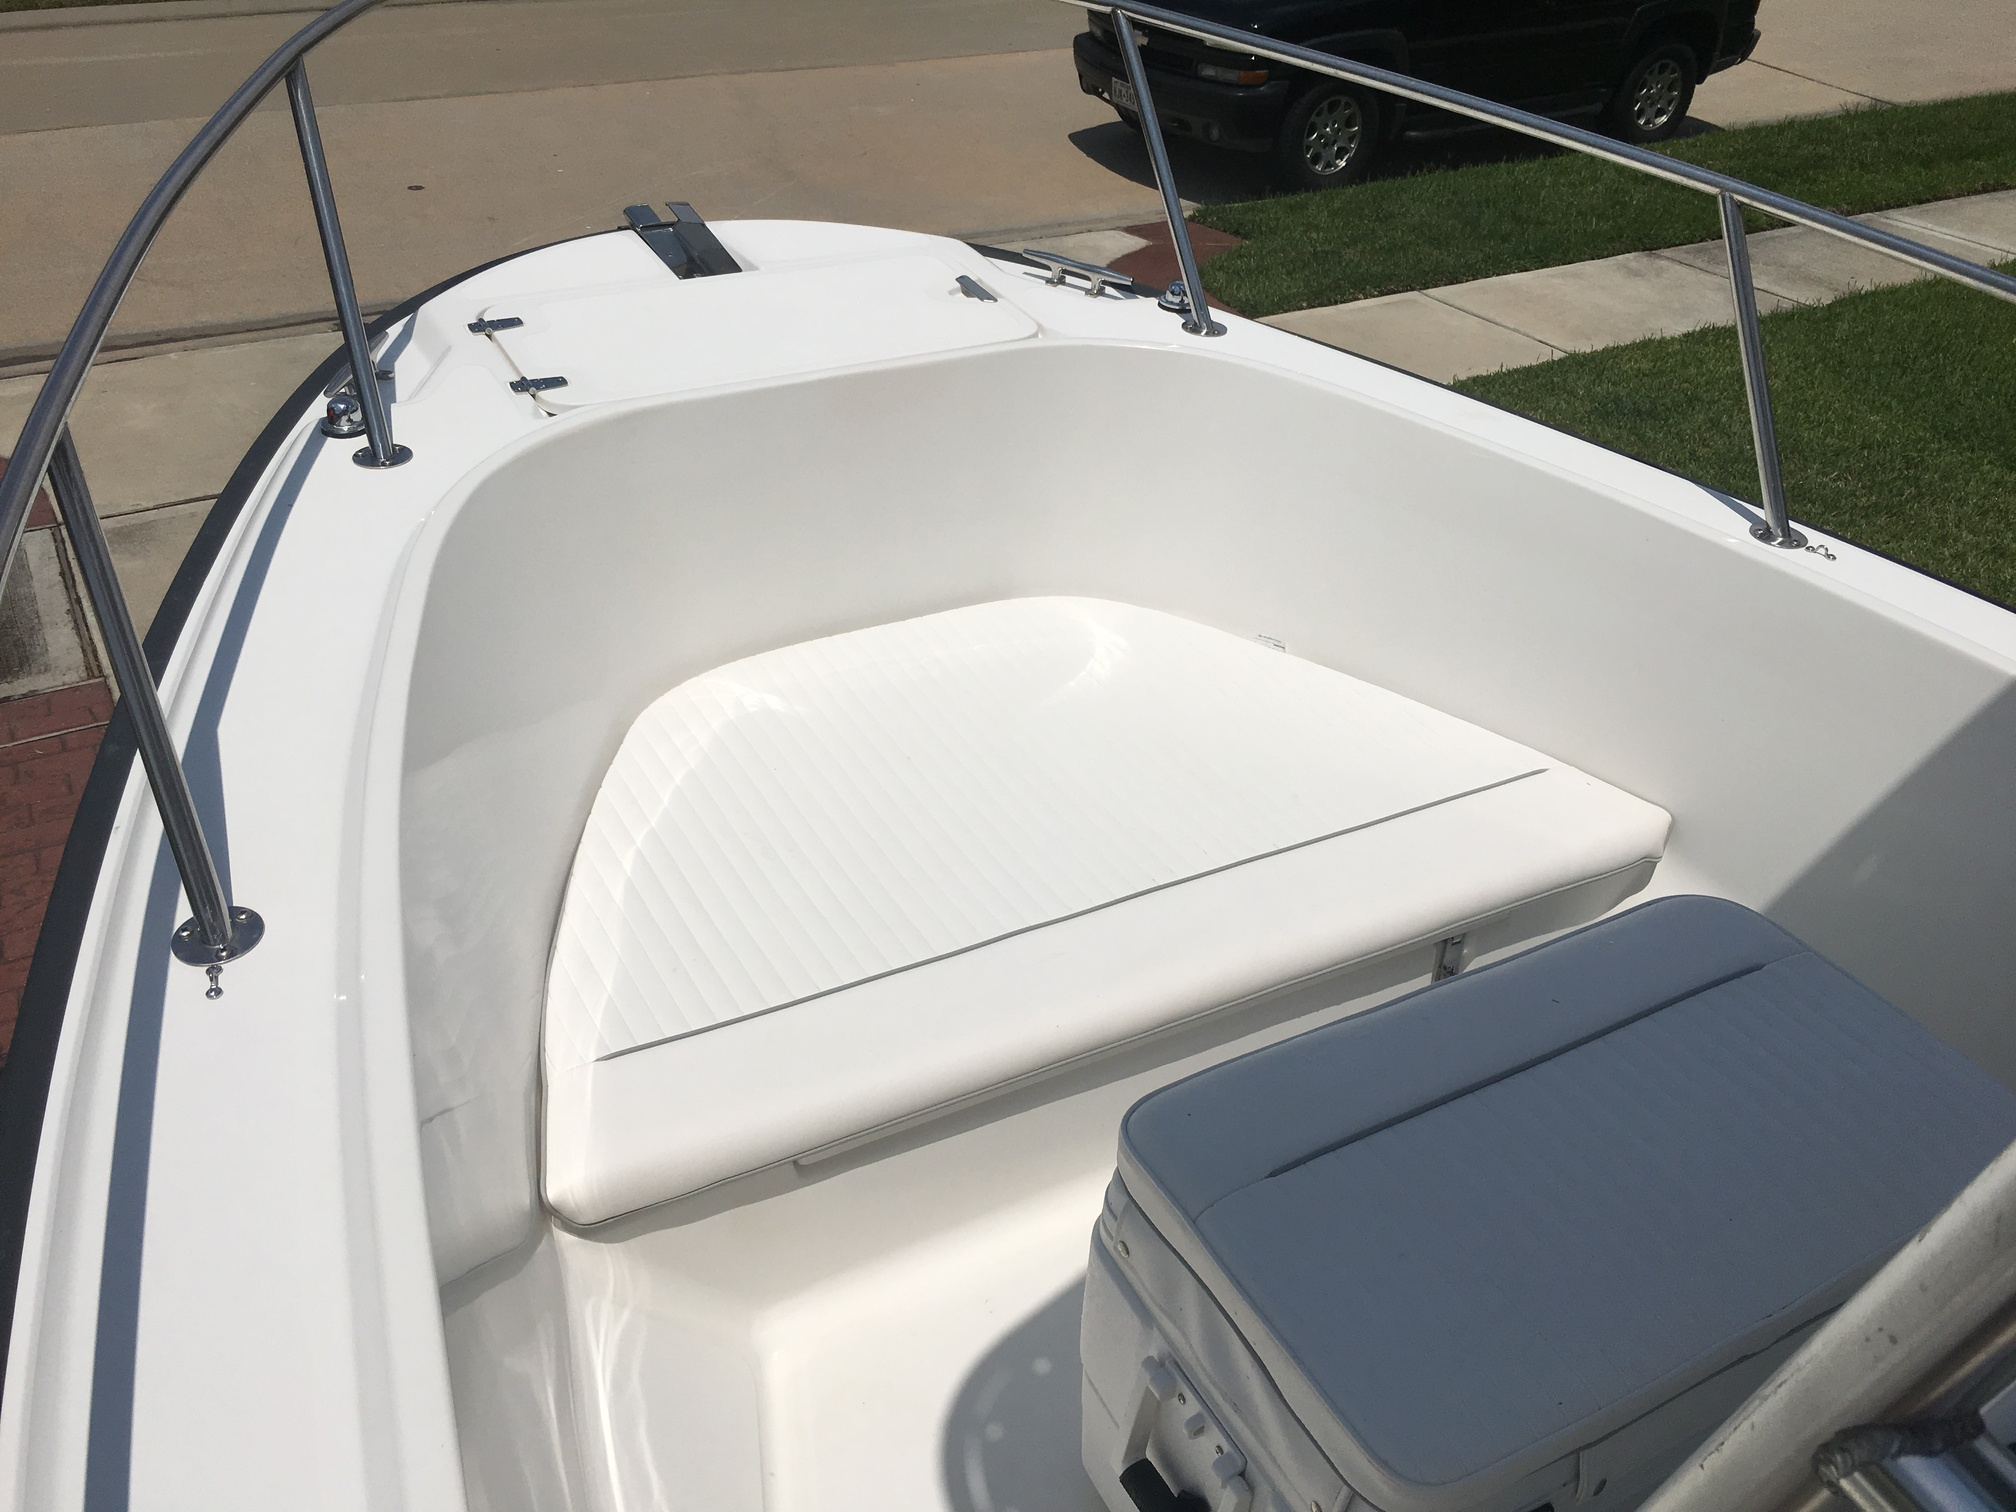 1998 Boston Whaler Outrage 20 FULLY RESTORED - $25,000